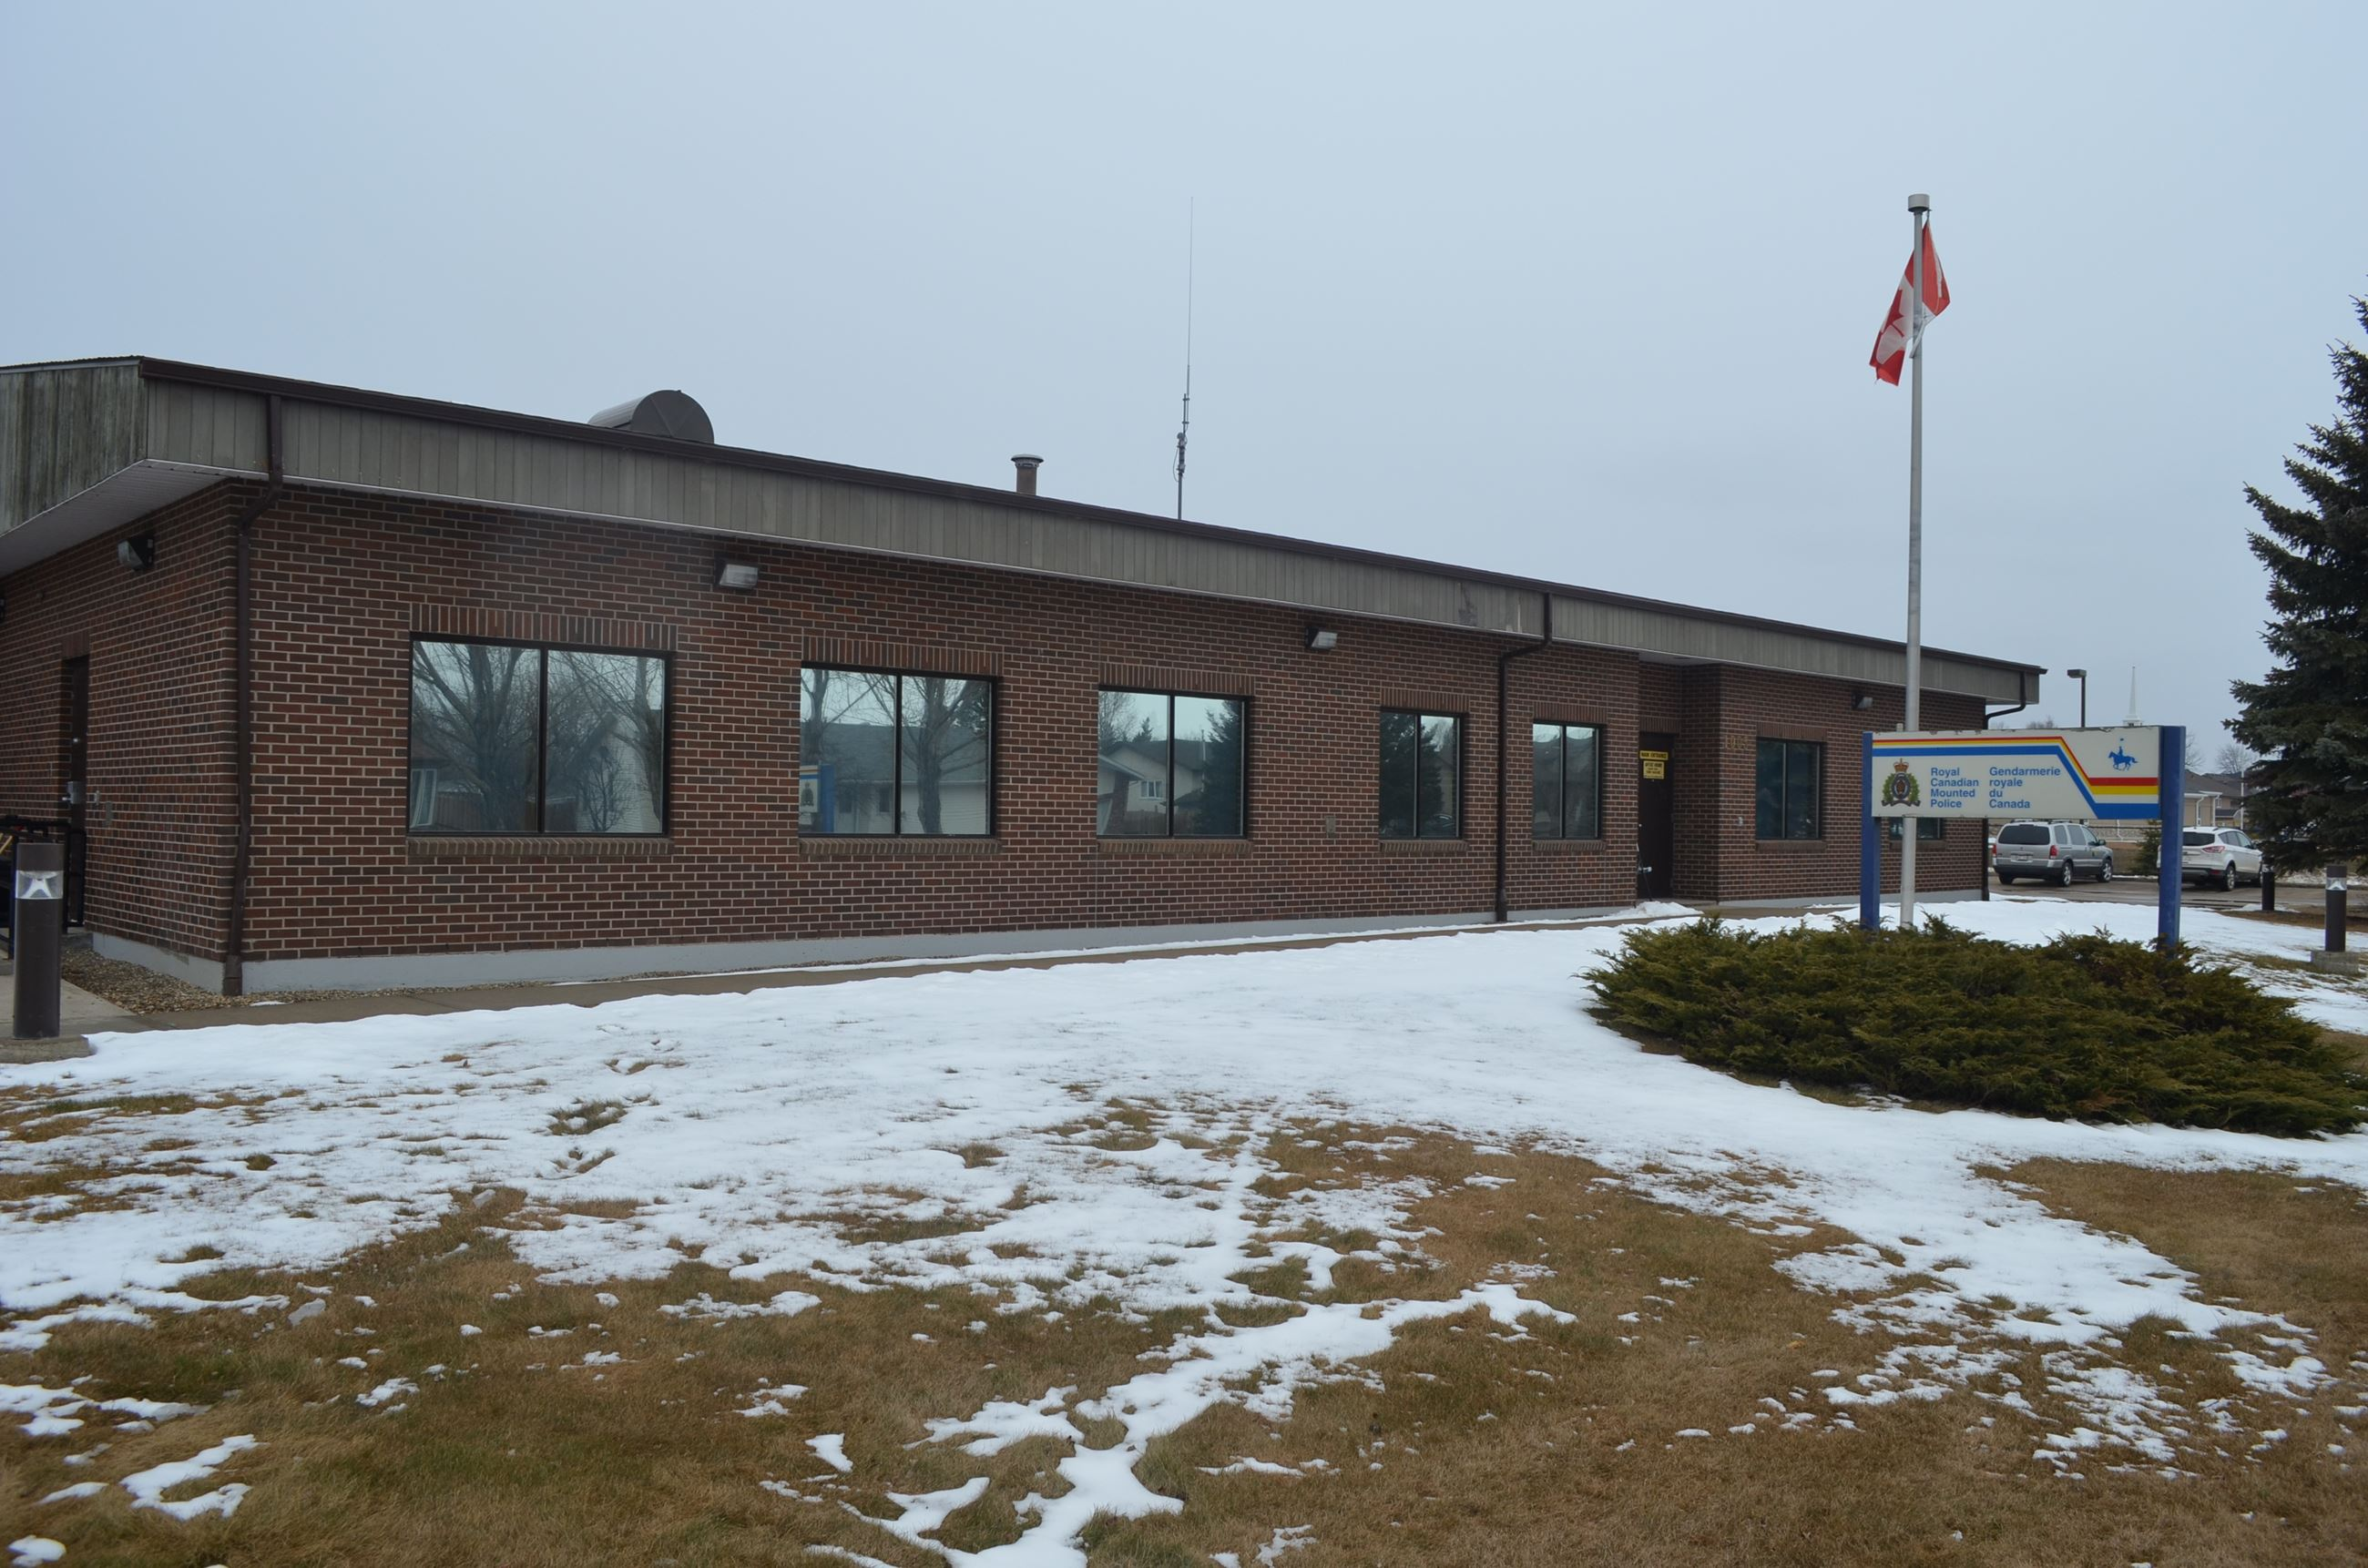 The front of the Royal Canadian Mounted Police building with snow on the ground in front of it.